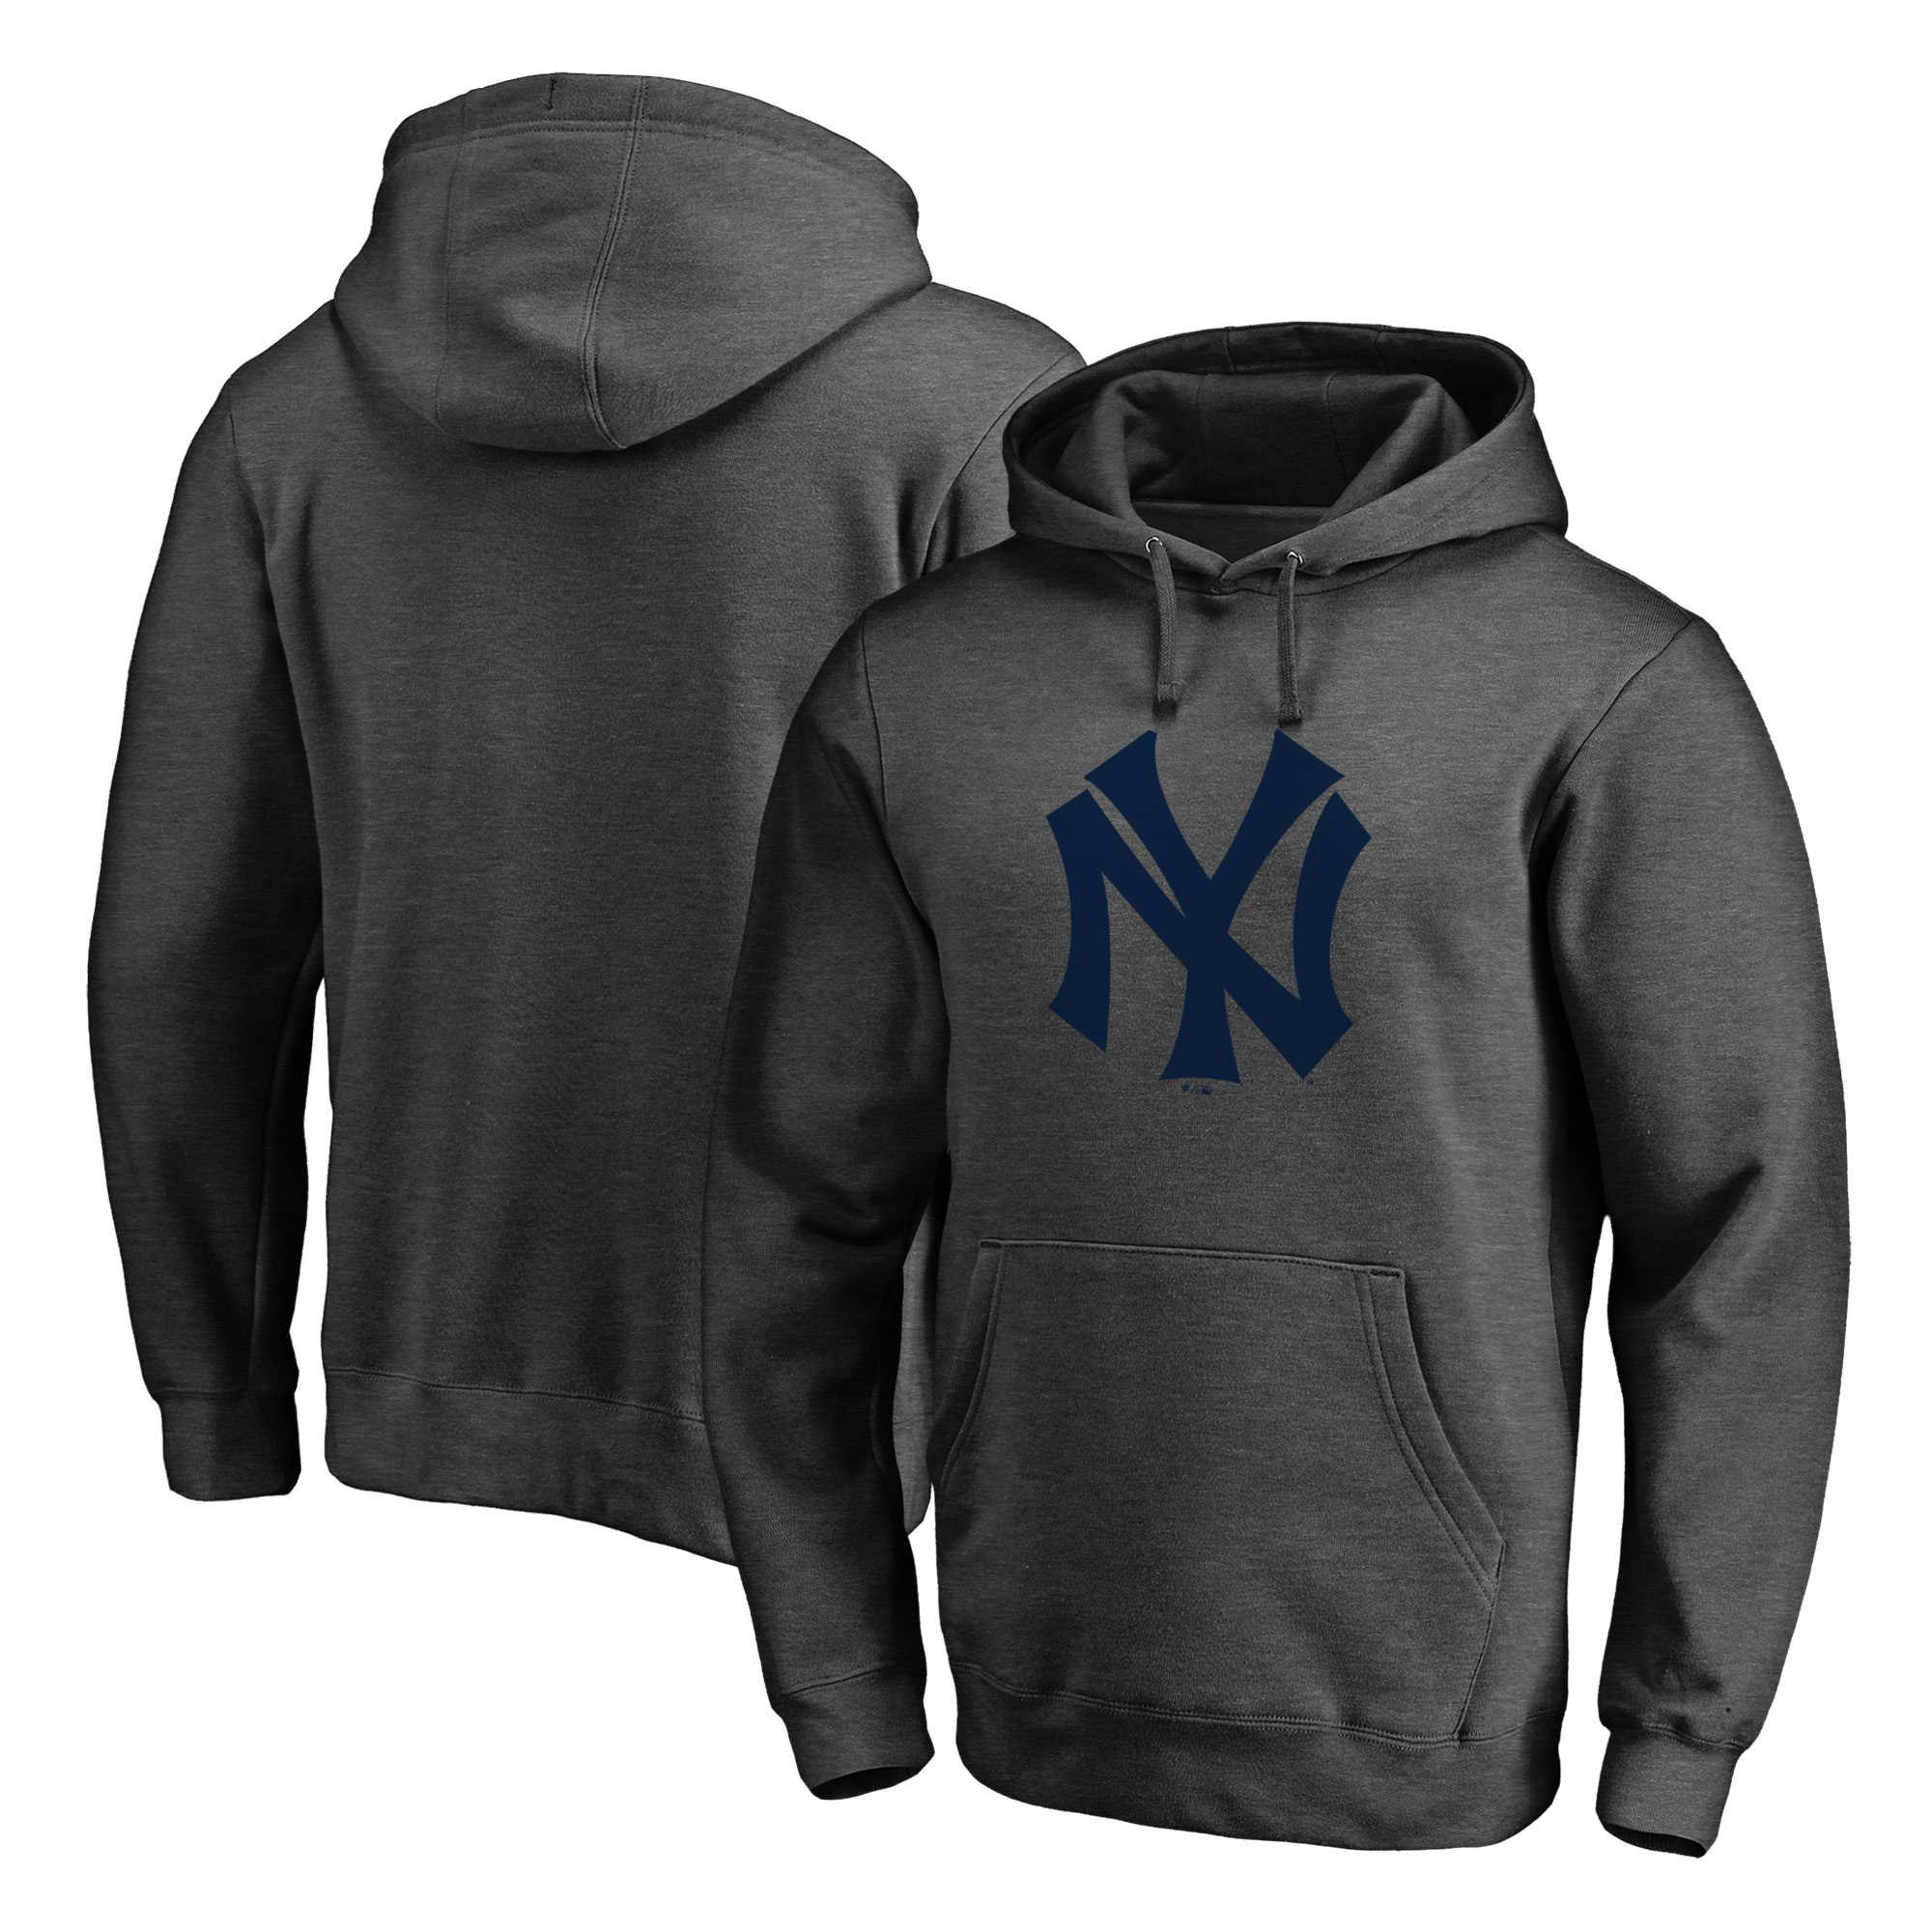 New York Yankees Fanatics Branded Cooperstown Collection Huntington Pullover Hoodie - Heathered Gray